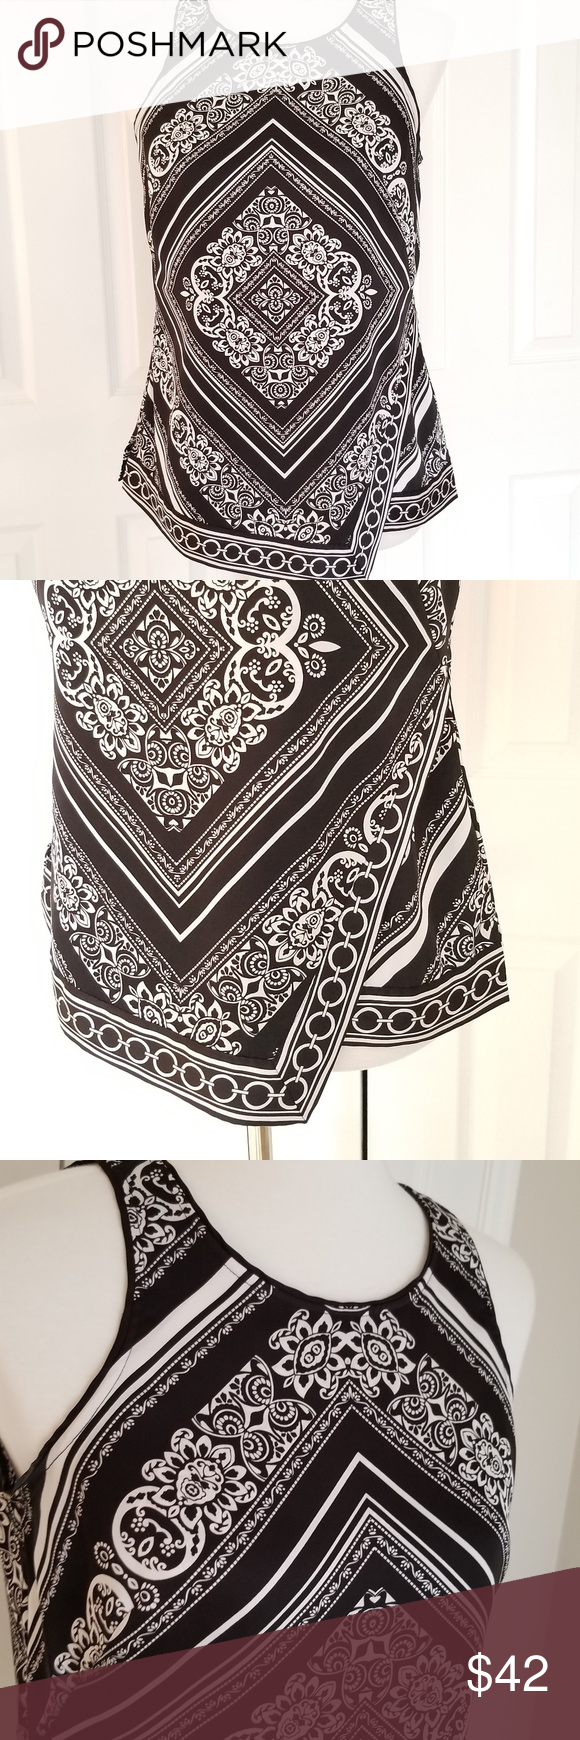 """WHBM Top Wrap Look - Size Small - EUC!! Beautiful WHBM top with faux wrap look in front of top.   Black piping along neck line and arm holes.  Long hidden zip in back of top with a keyhole design and silver button.  No flaws or issues, just beautiful!!  Fabric 98% polyester and 2% Spandex.  Approximate Measurements:  Bust: 18""""  Waist: 17""""  Length: 24.5""""  non-smoking home  ship same or next business day  Open to questions and offers! White House Black Market Tops Blouses"""